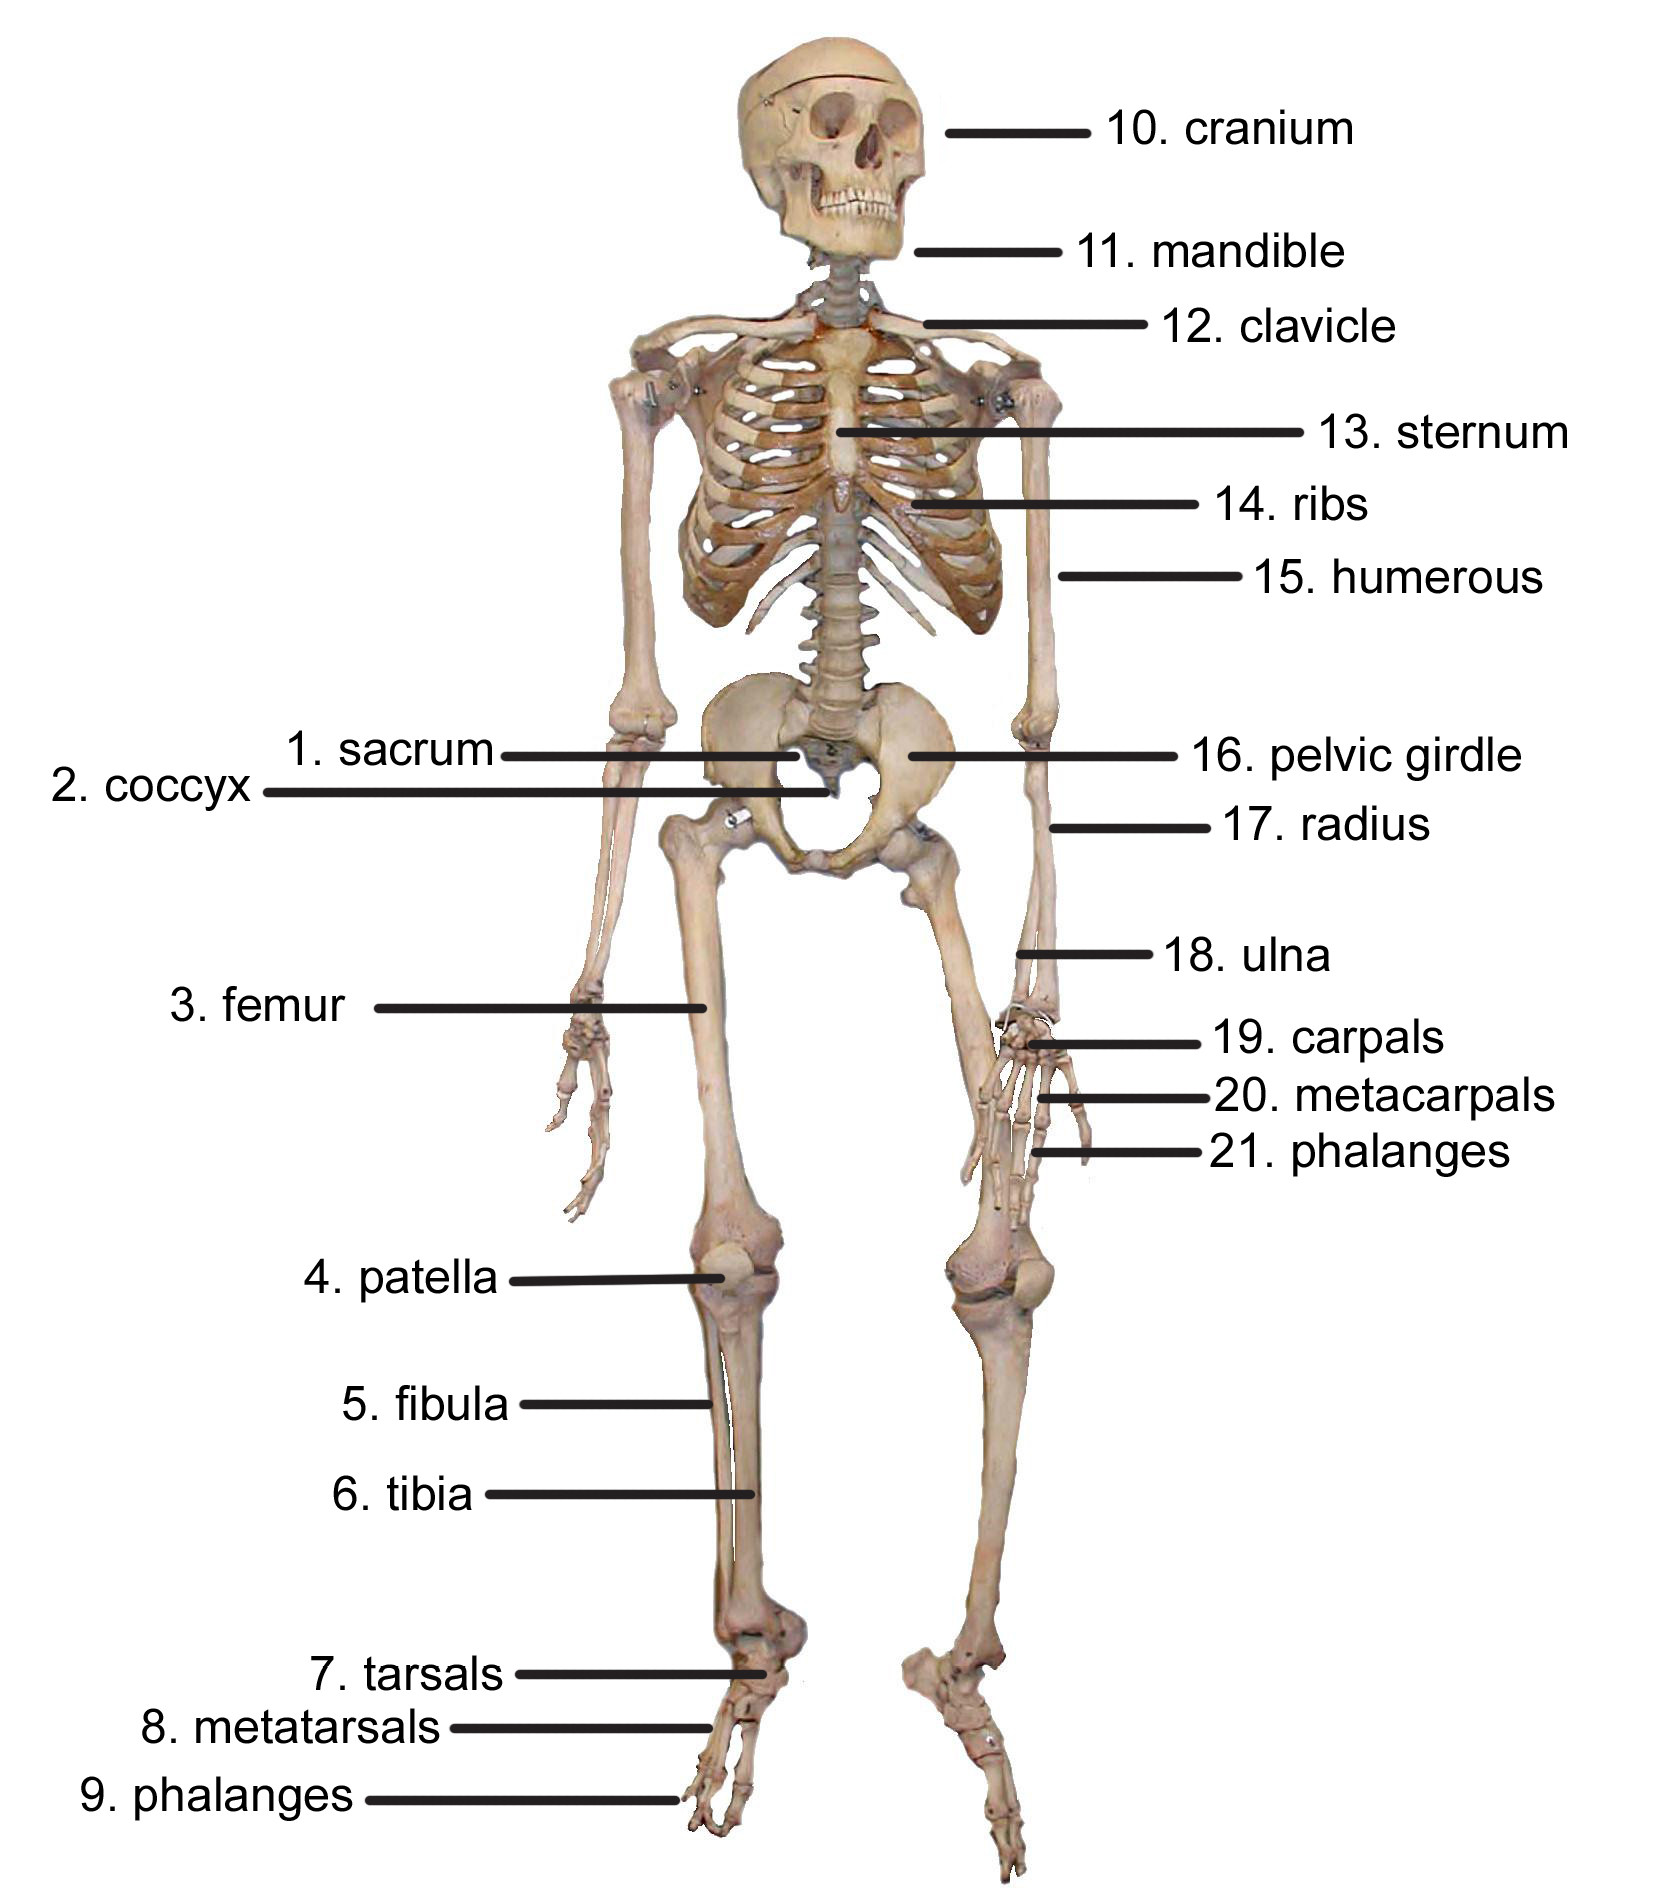 CyberSurgeons – Skeletal System Diagram Worksheet